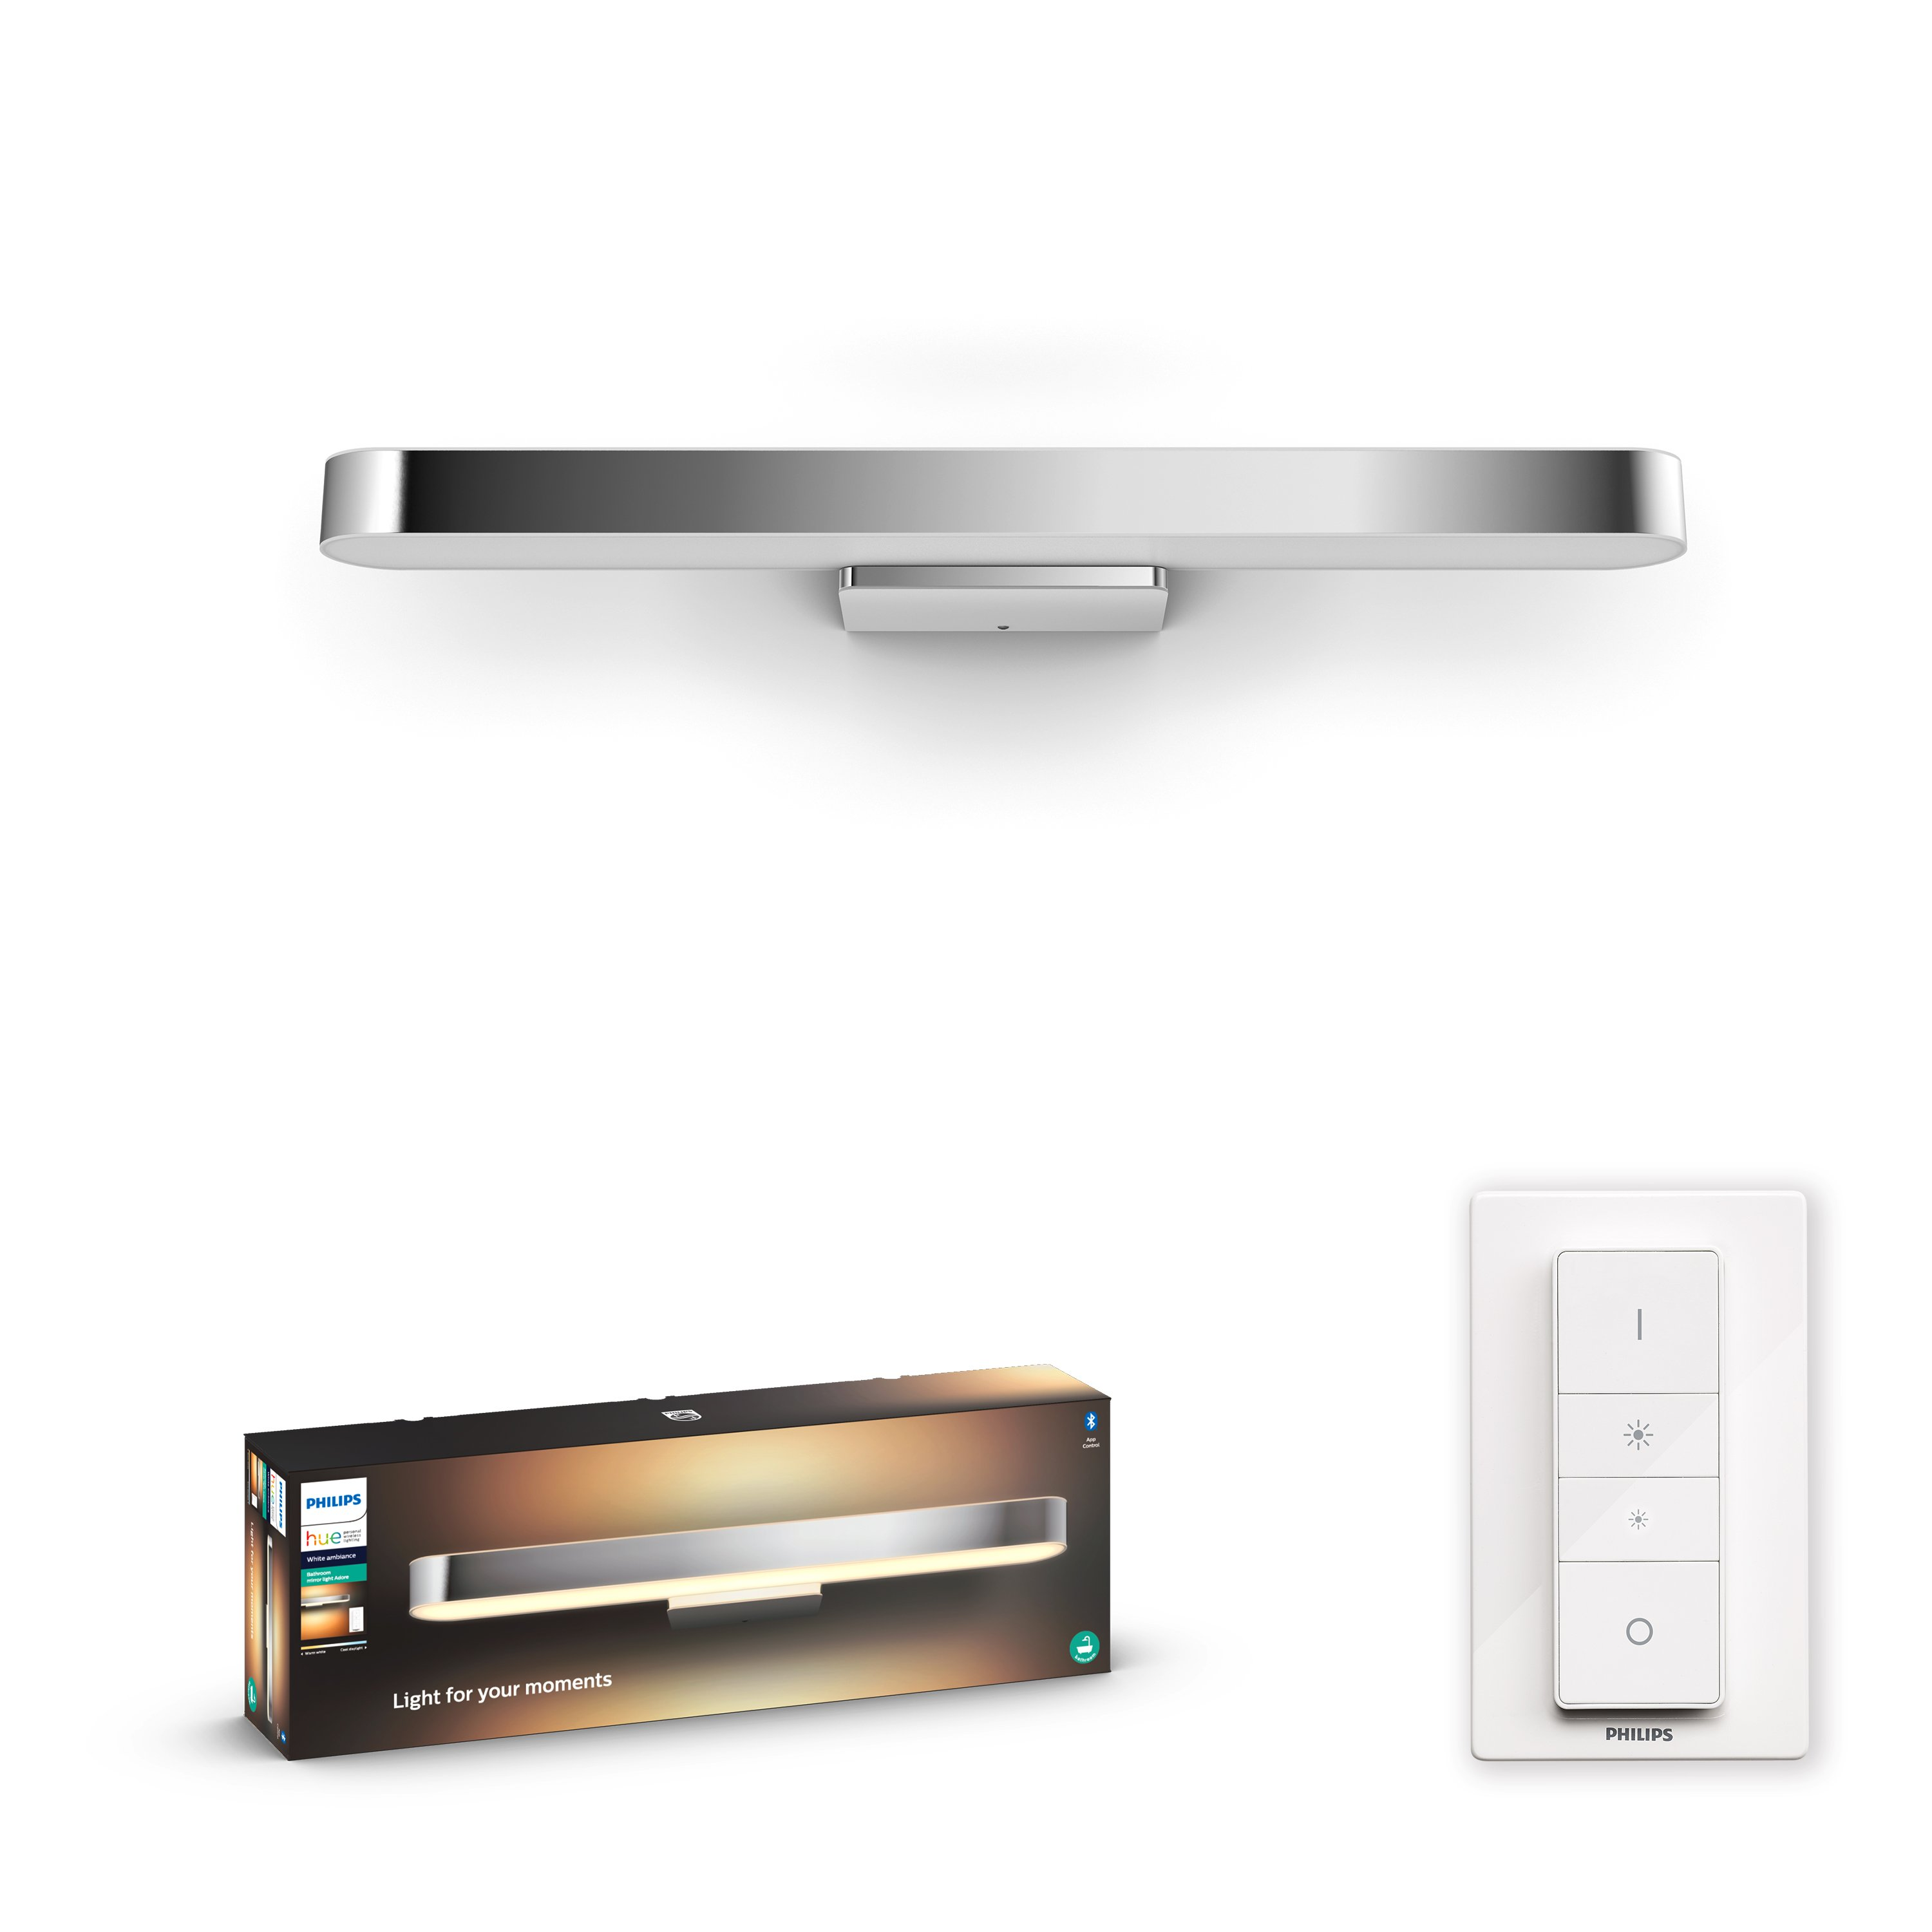 Philips Hue - Adore Hue Wall Lamp Chrome - White Ambiance - Bluetooth Included Dimmer switch